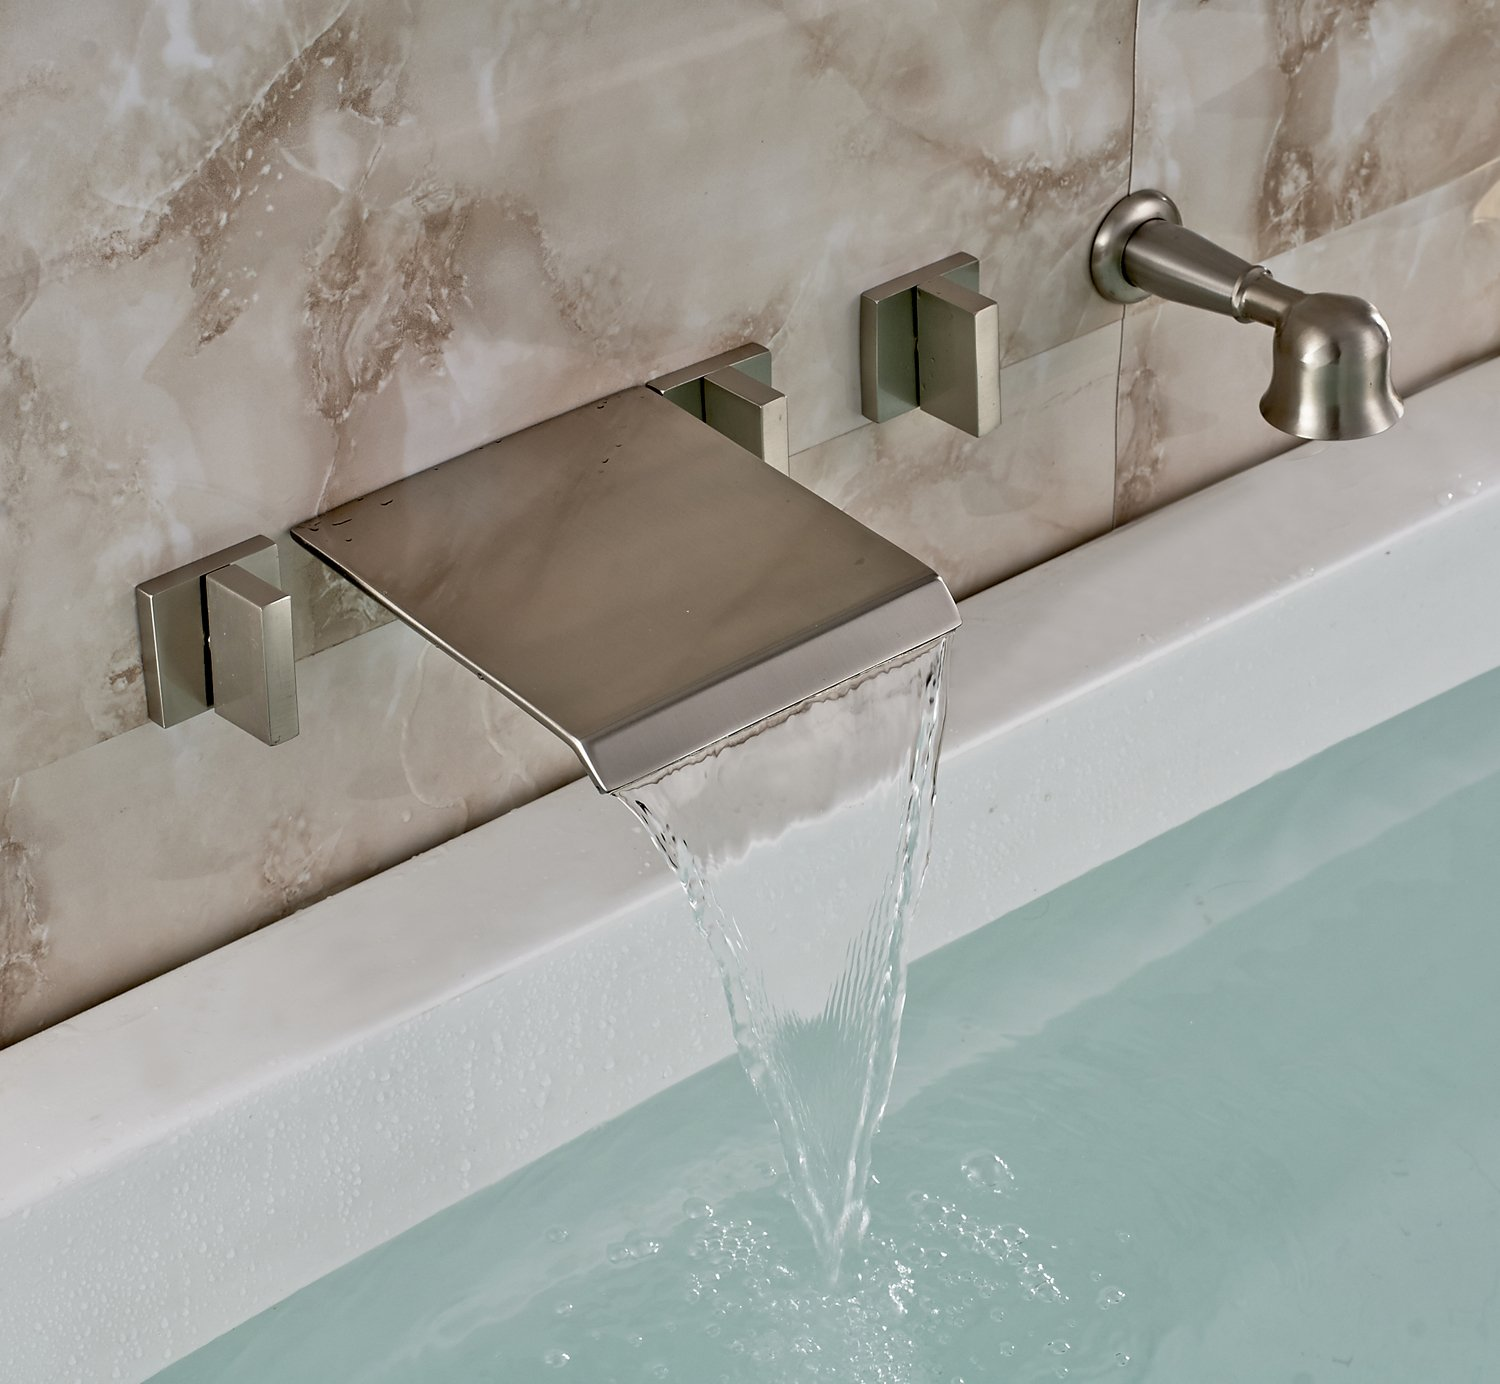 Rozin Brushed Nickel Wall Mounted Waterfall Bathtub Mixer Faucet Tap With  Handheld Shower     Amazon.com